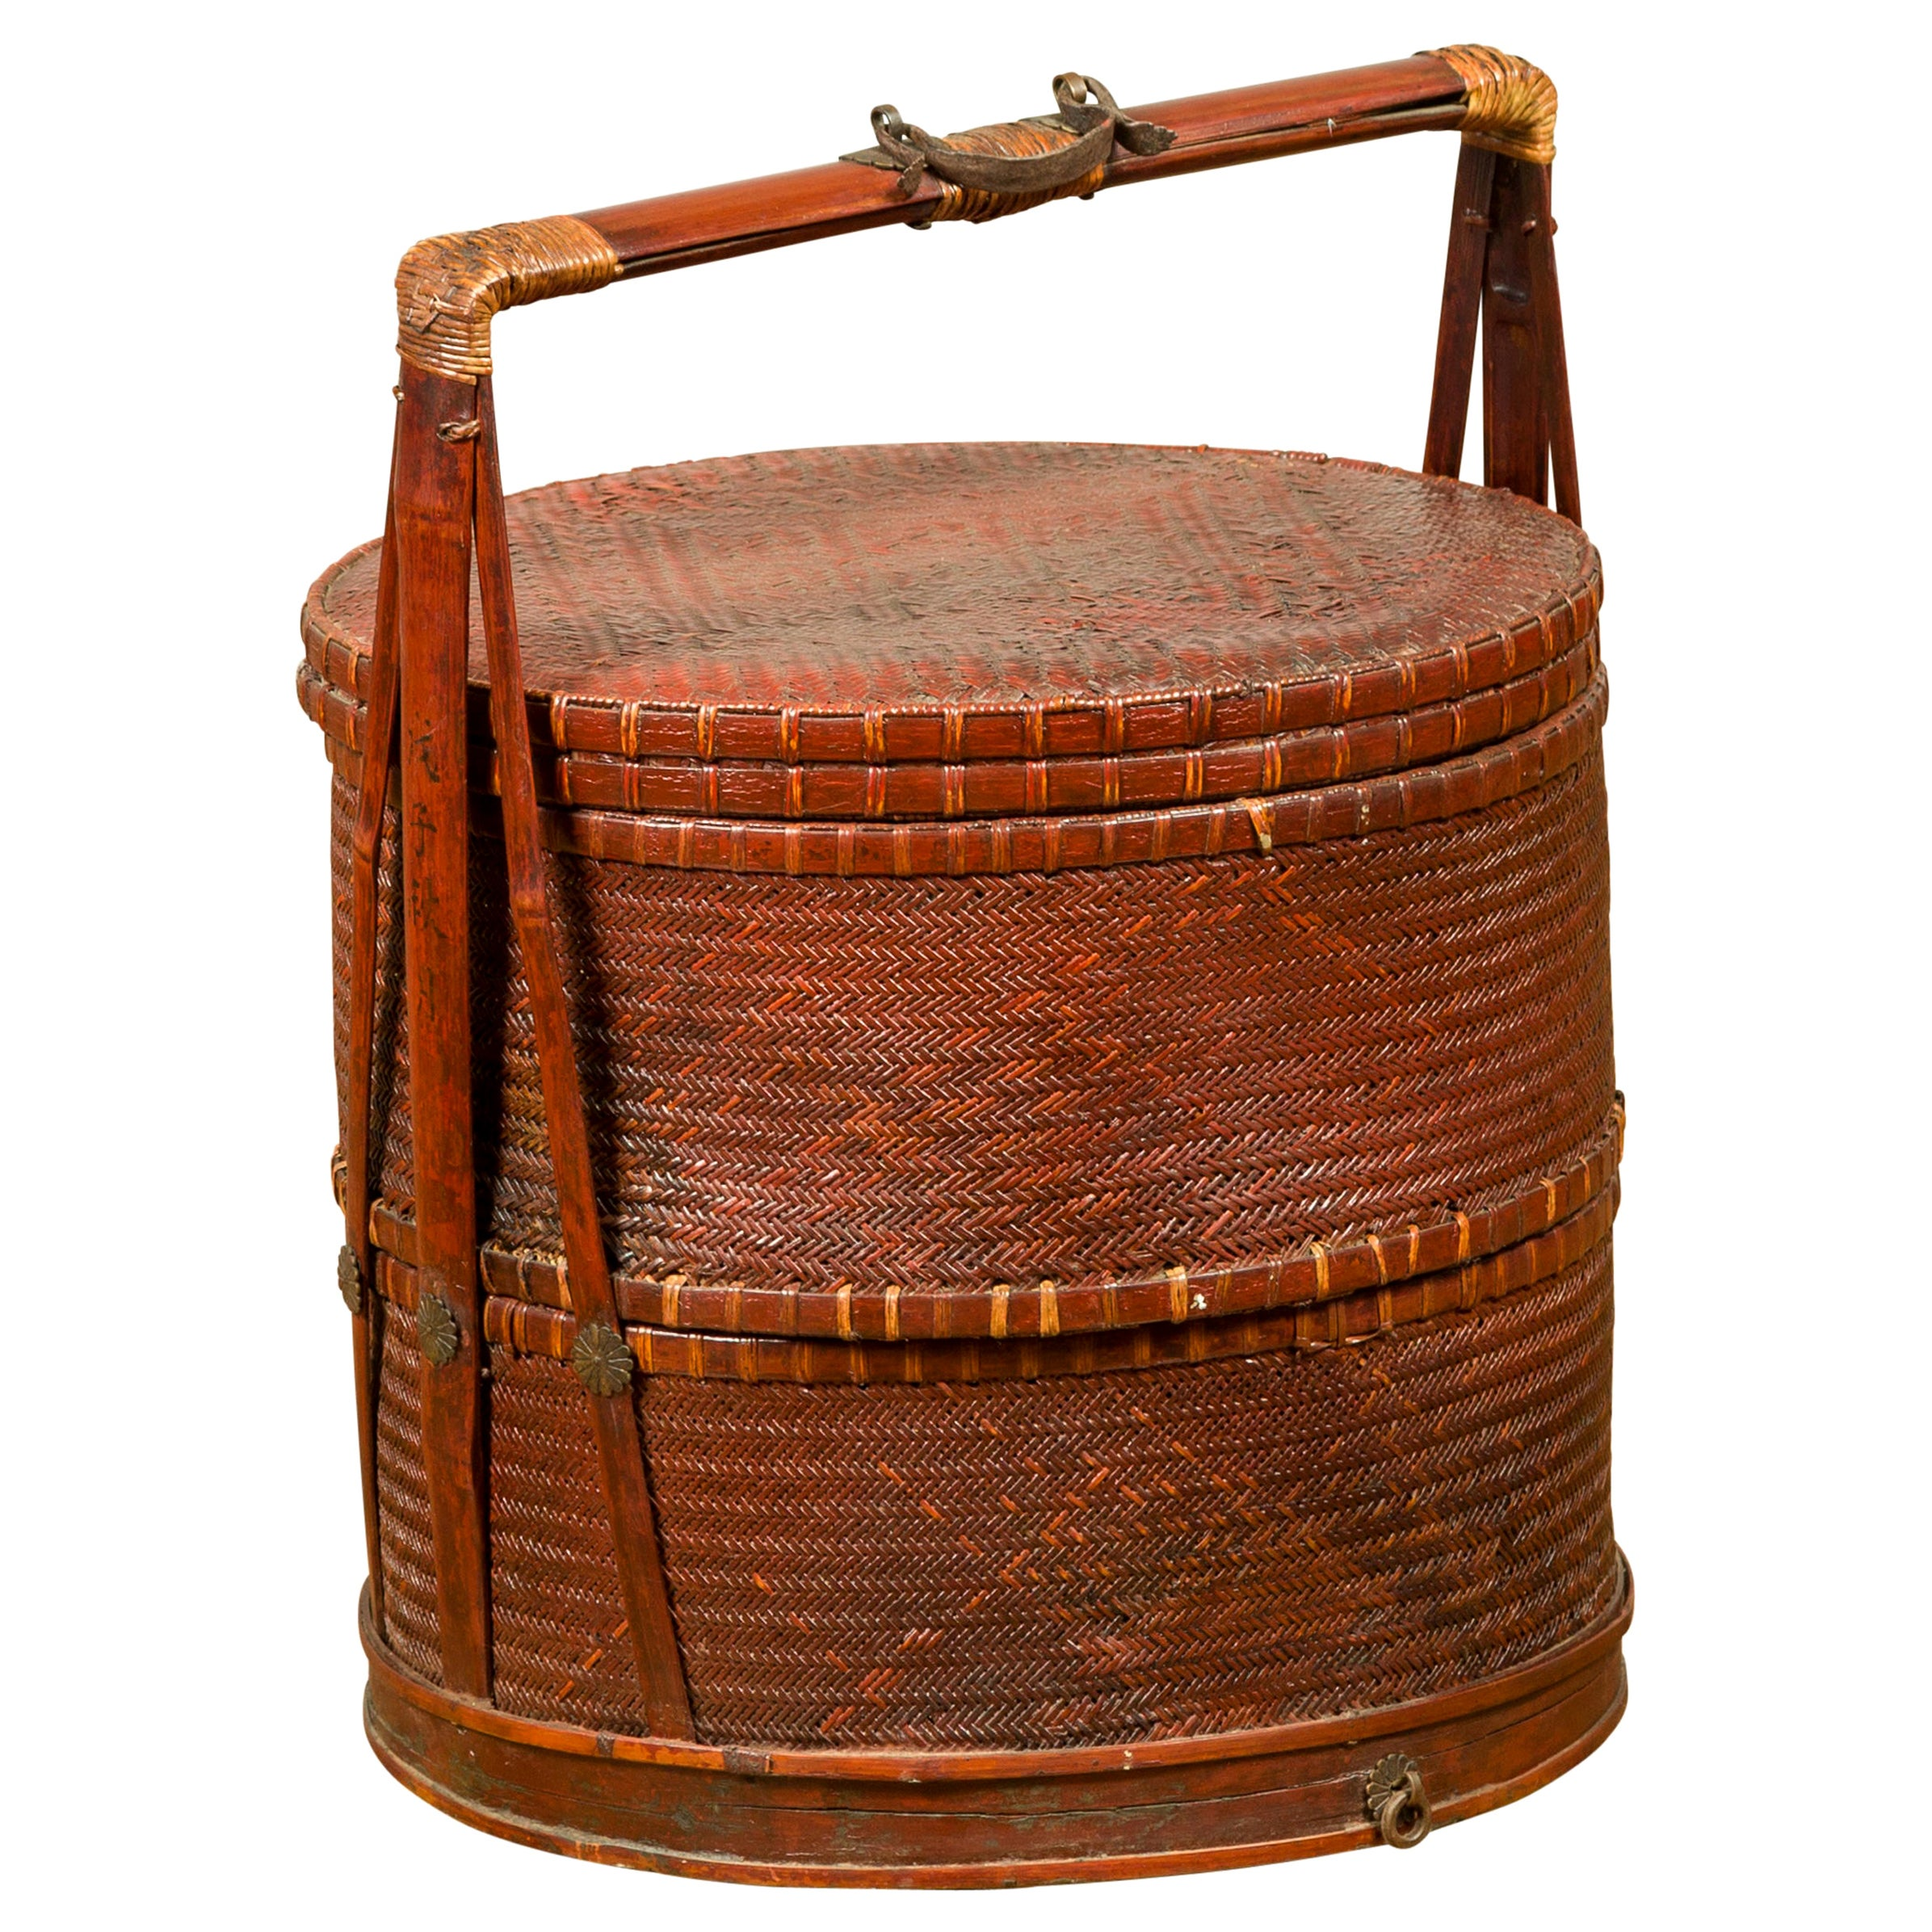 Antique Chinese Rattan and Bamboo Nested Lunch Basket with Carved Handle